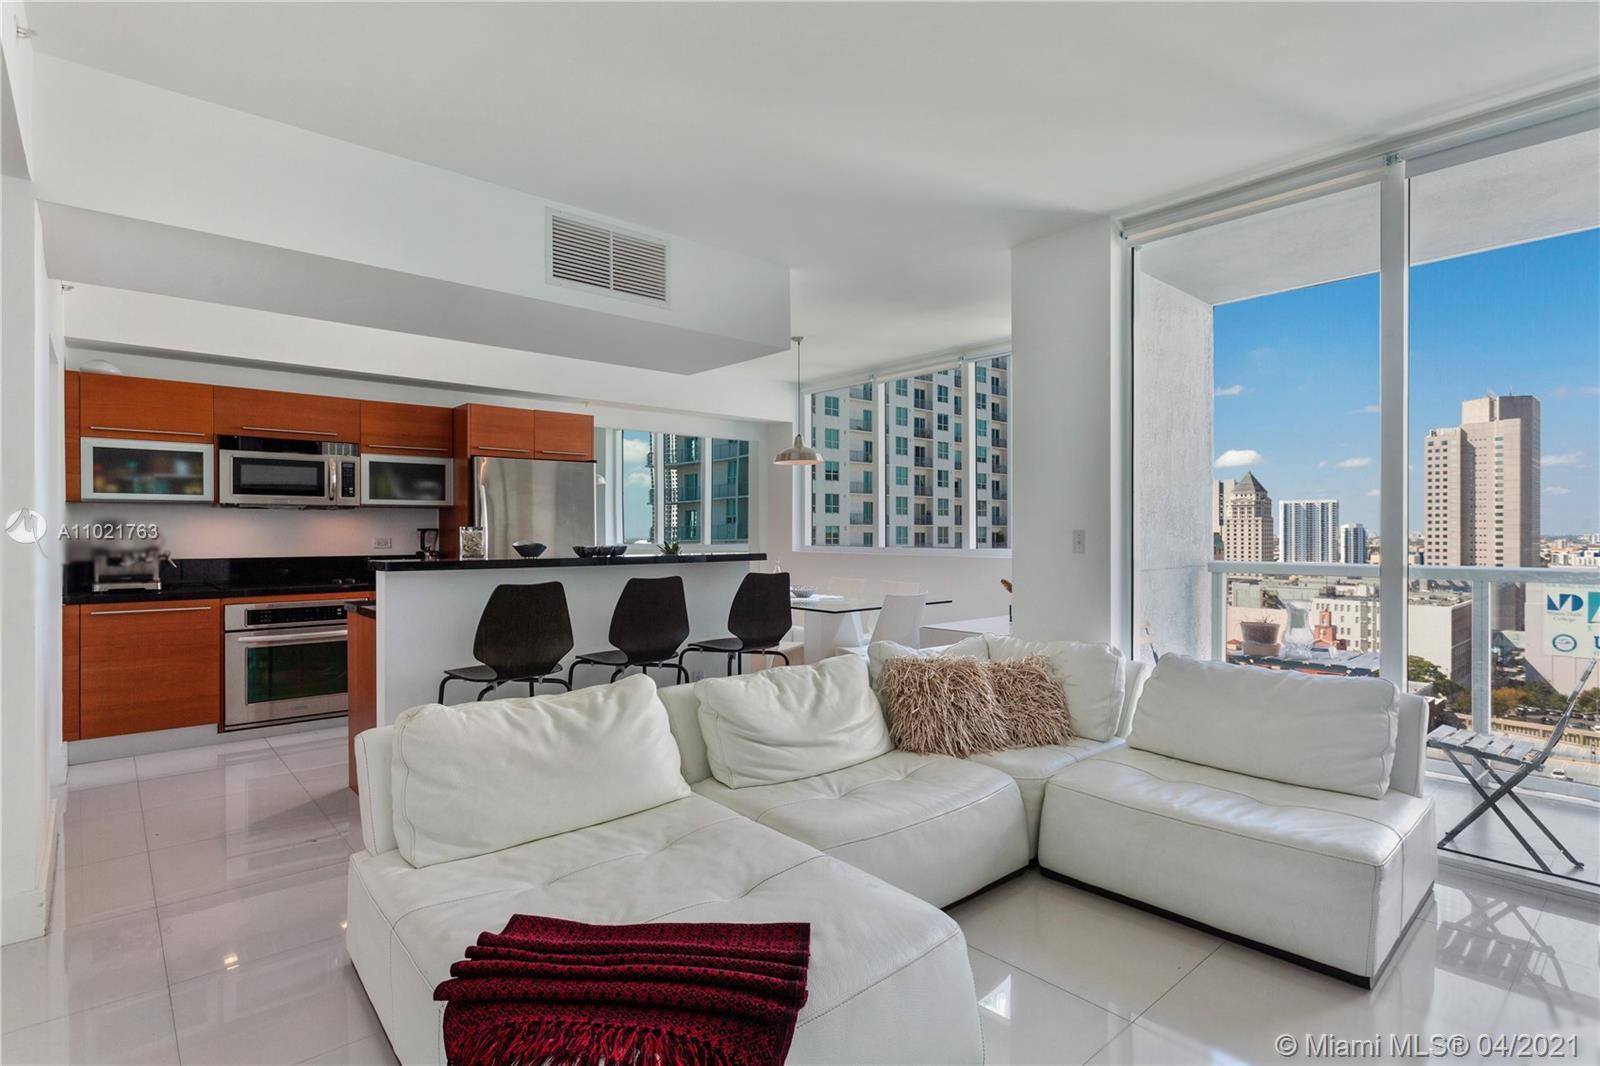 Large 1 bedroom + Den converted into a 2 bedrooms 2 baths. Corner unit in the Heart of Downtown Miam